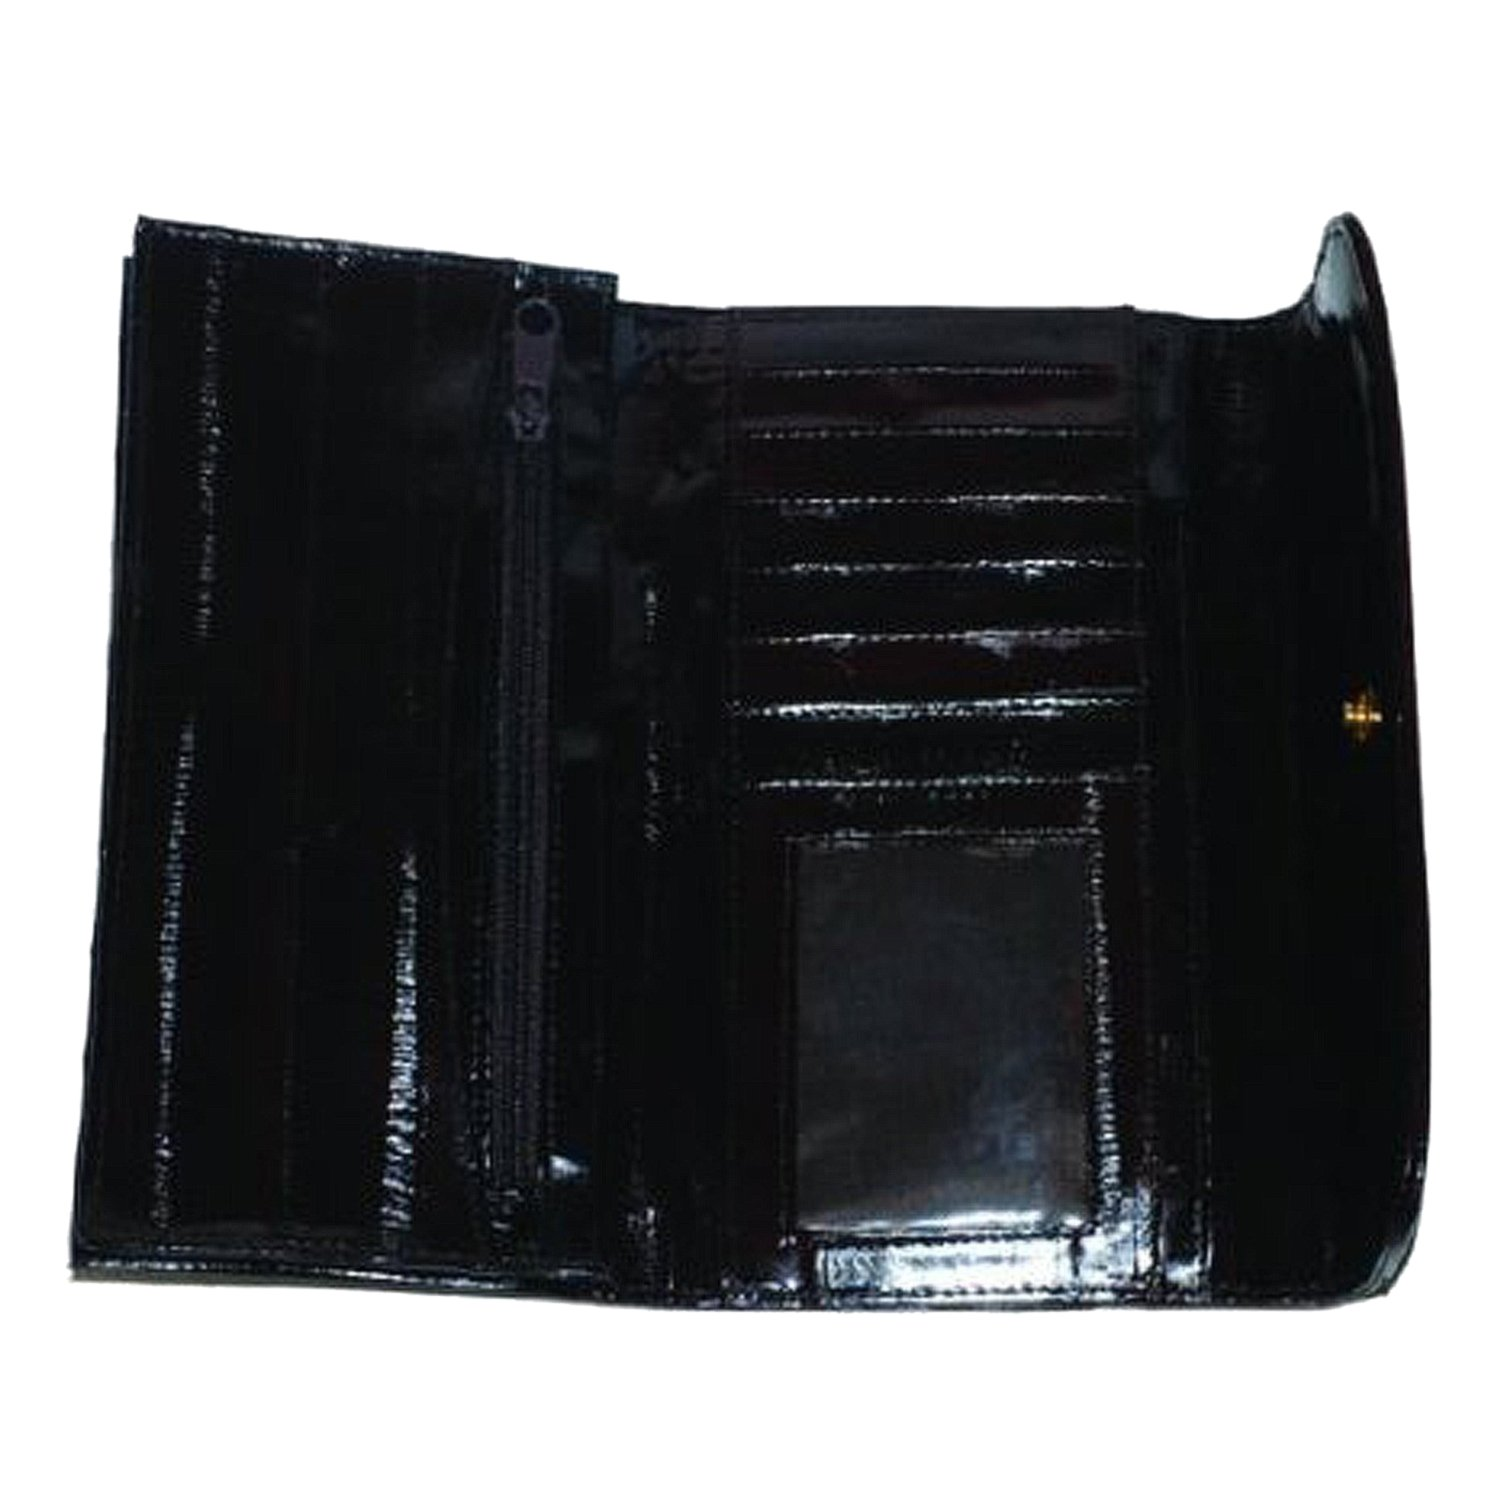 New Soft EEL Skin Leather Checkbook Wallet W/Snap Closure #E2575 by Marshal